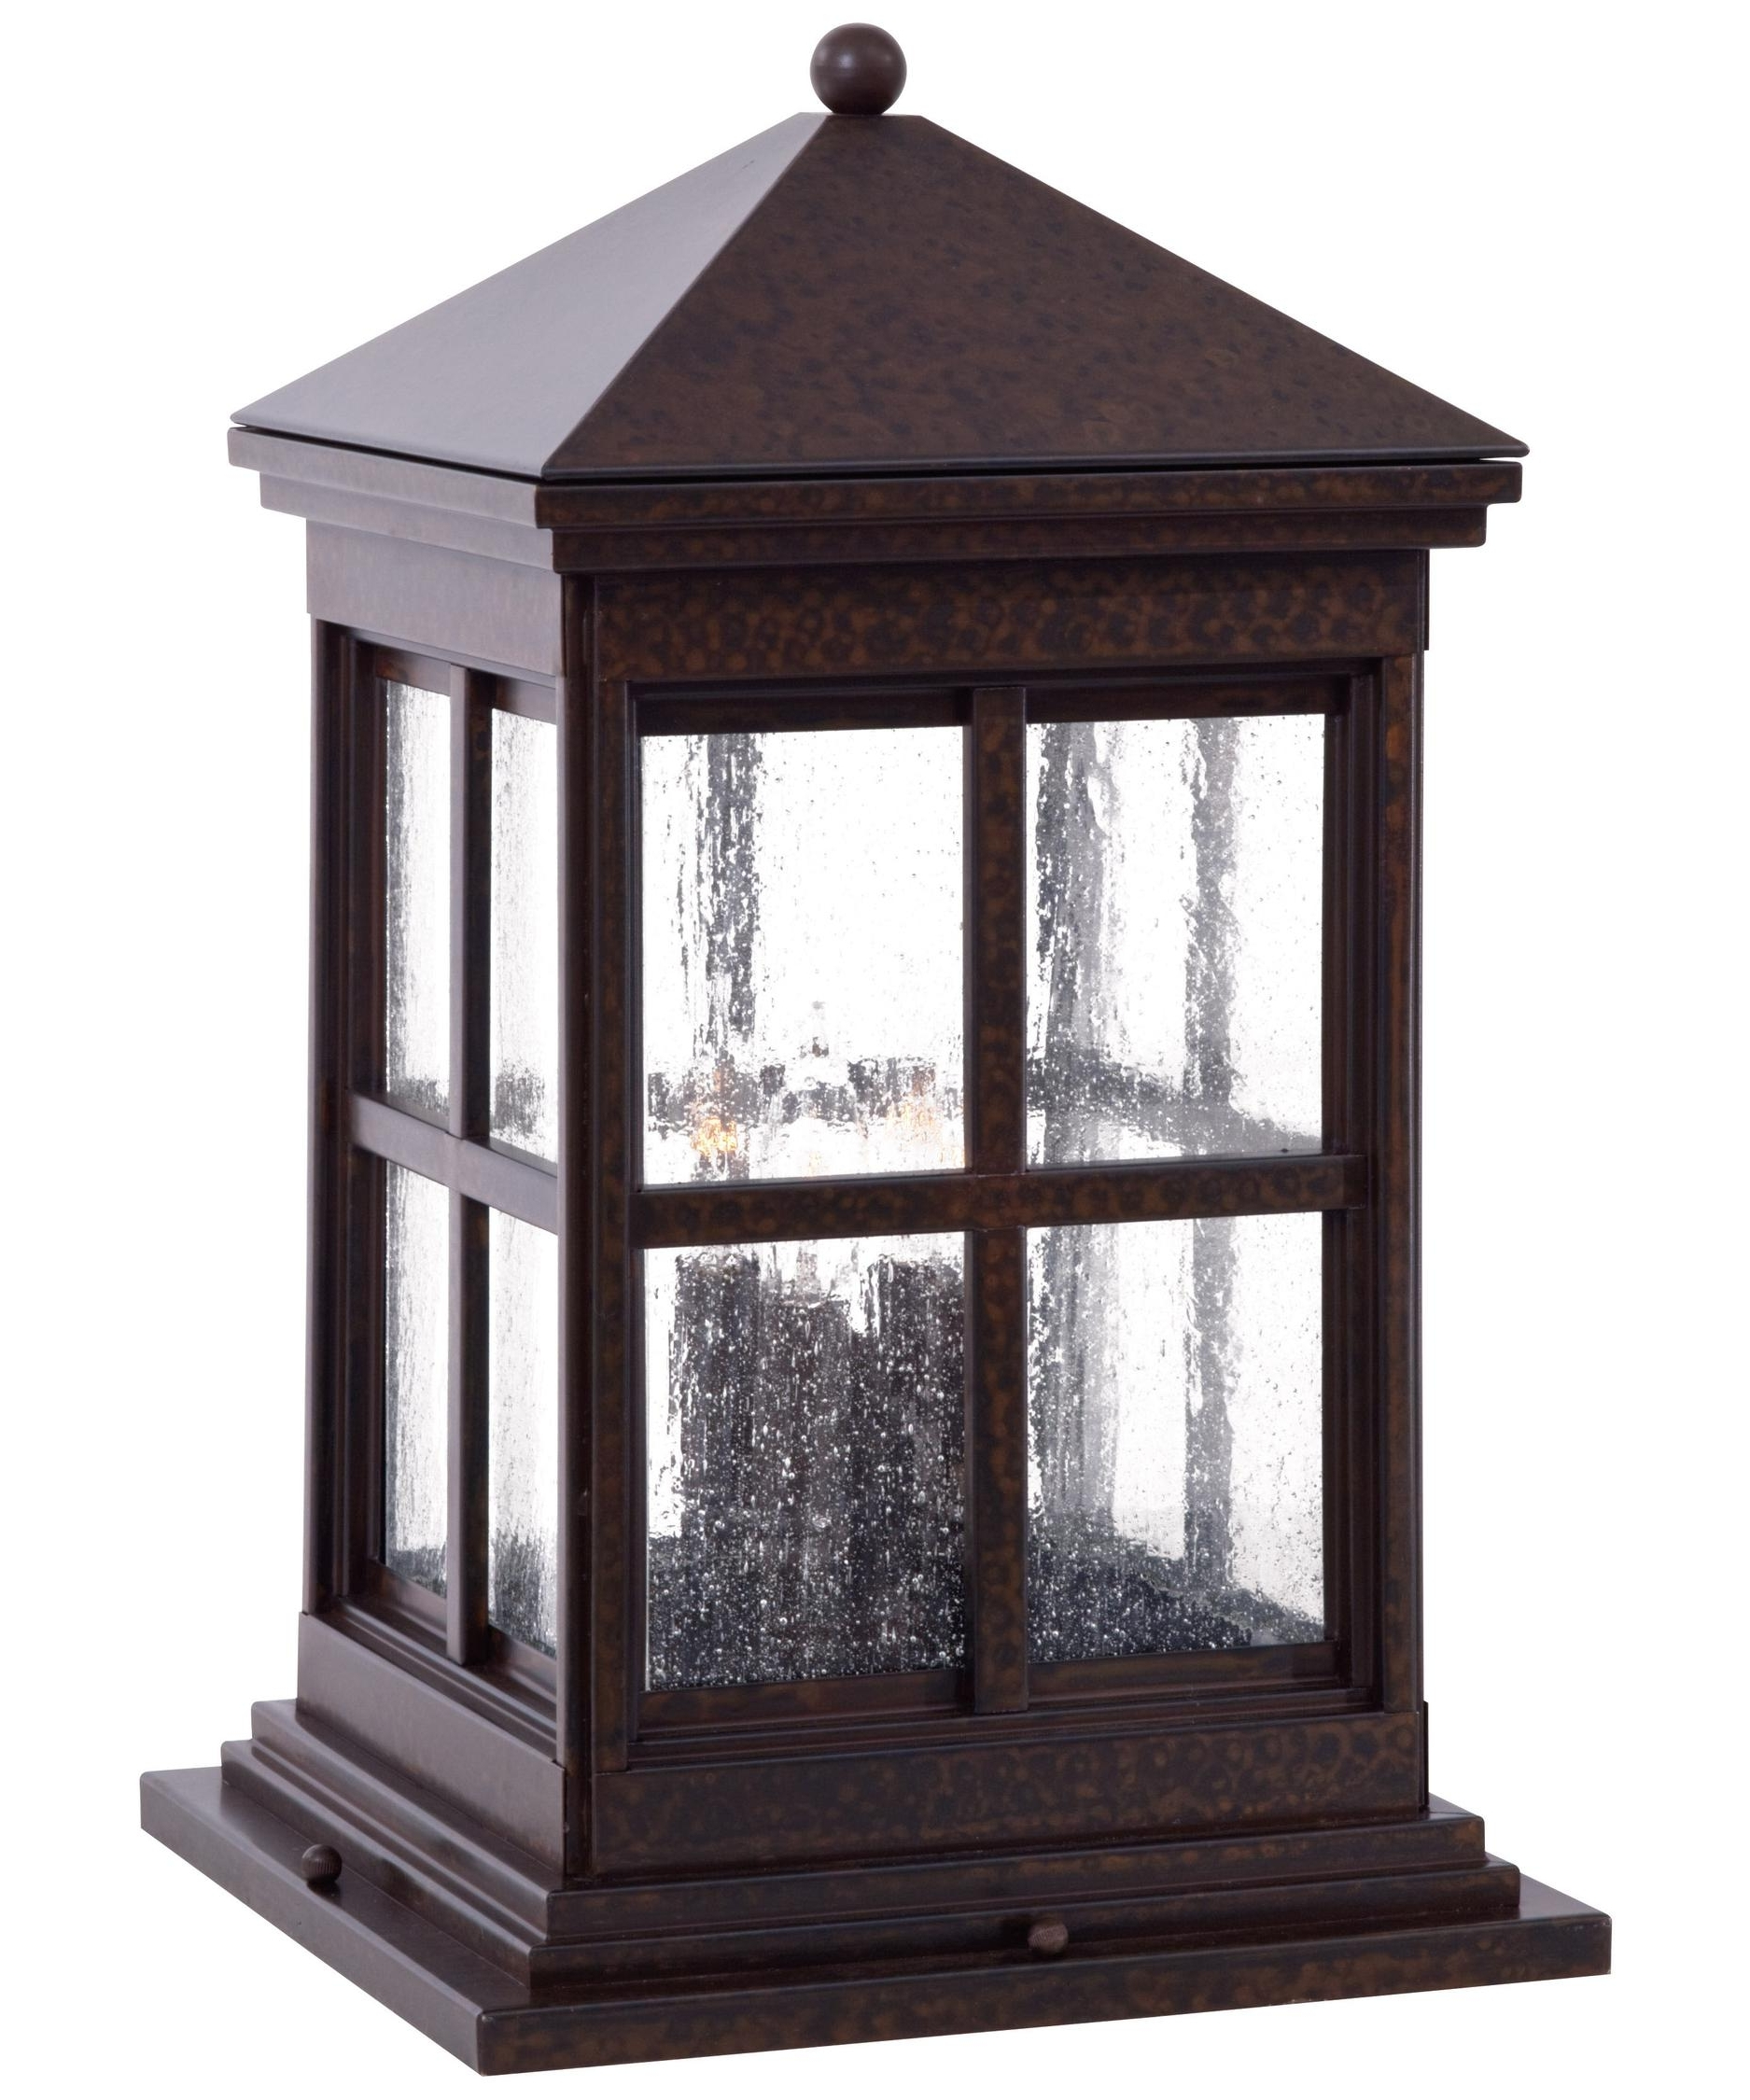 Fashionable Minka Lavery 8567 Berkeley 4 Light Outdoor Pier Lamp (View 6 of 20)